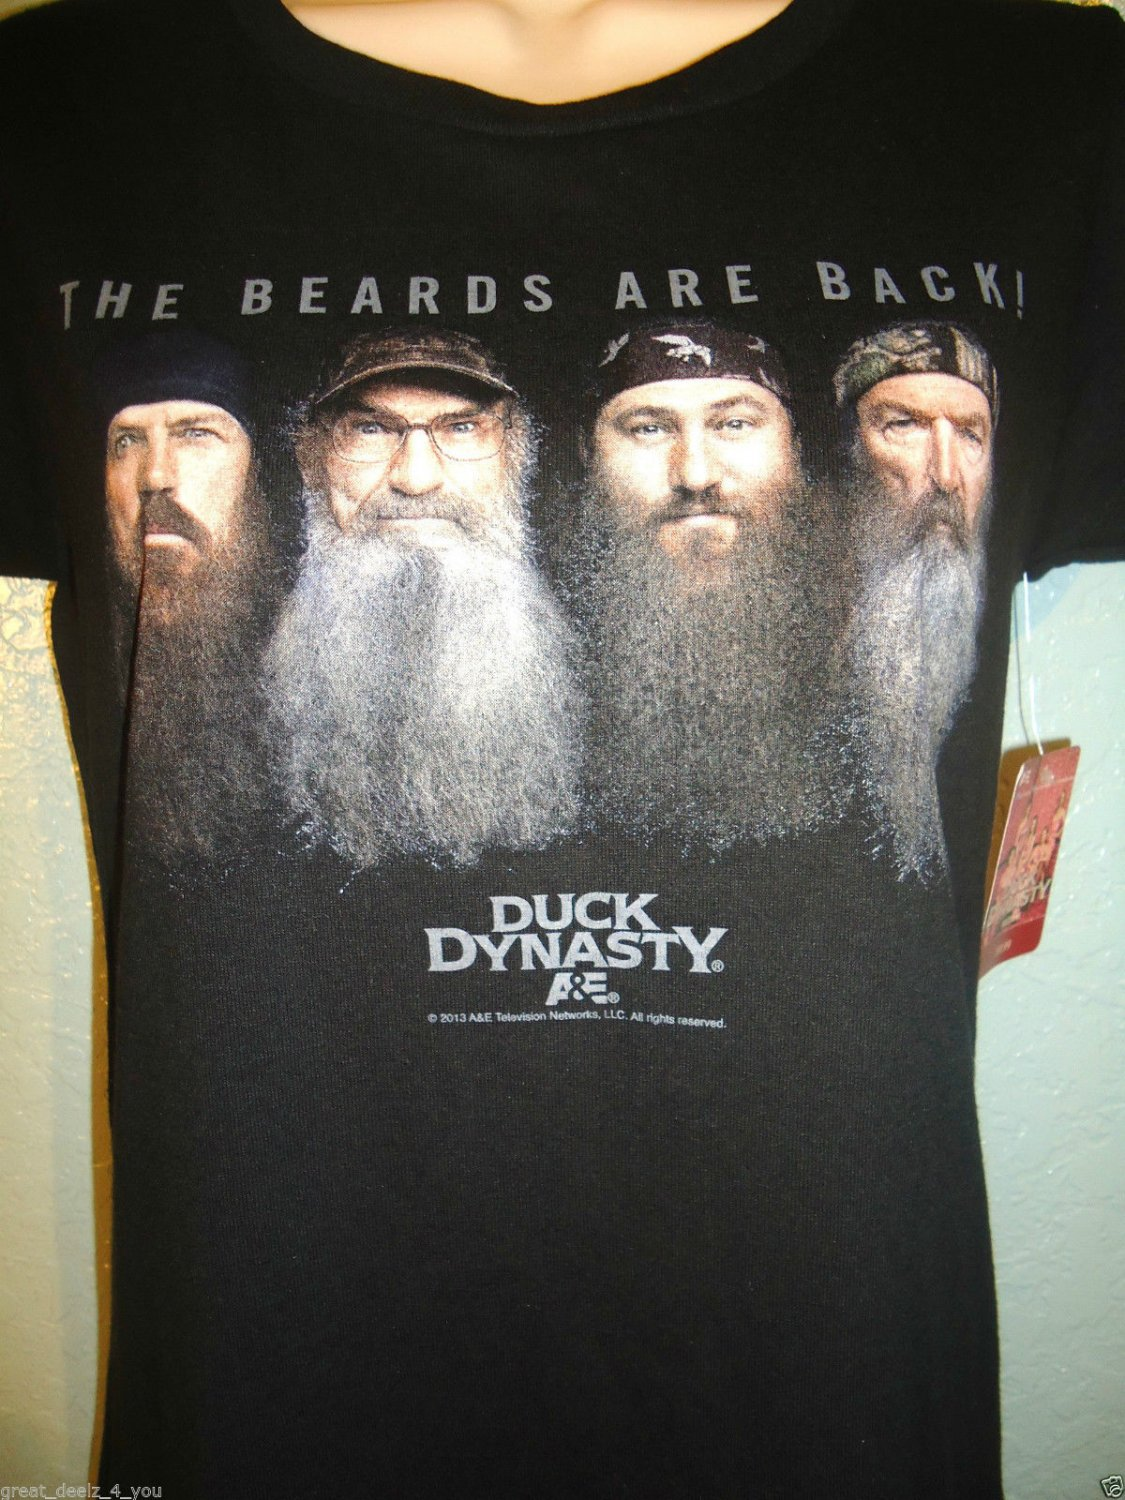 DUCK DYNASTY - WOMEN'S - BLACK - BEARDS - T-SHIRT - TOP - BRAND NEW - NWT - A&E